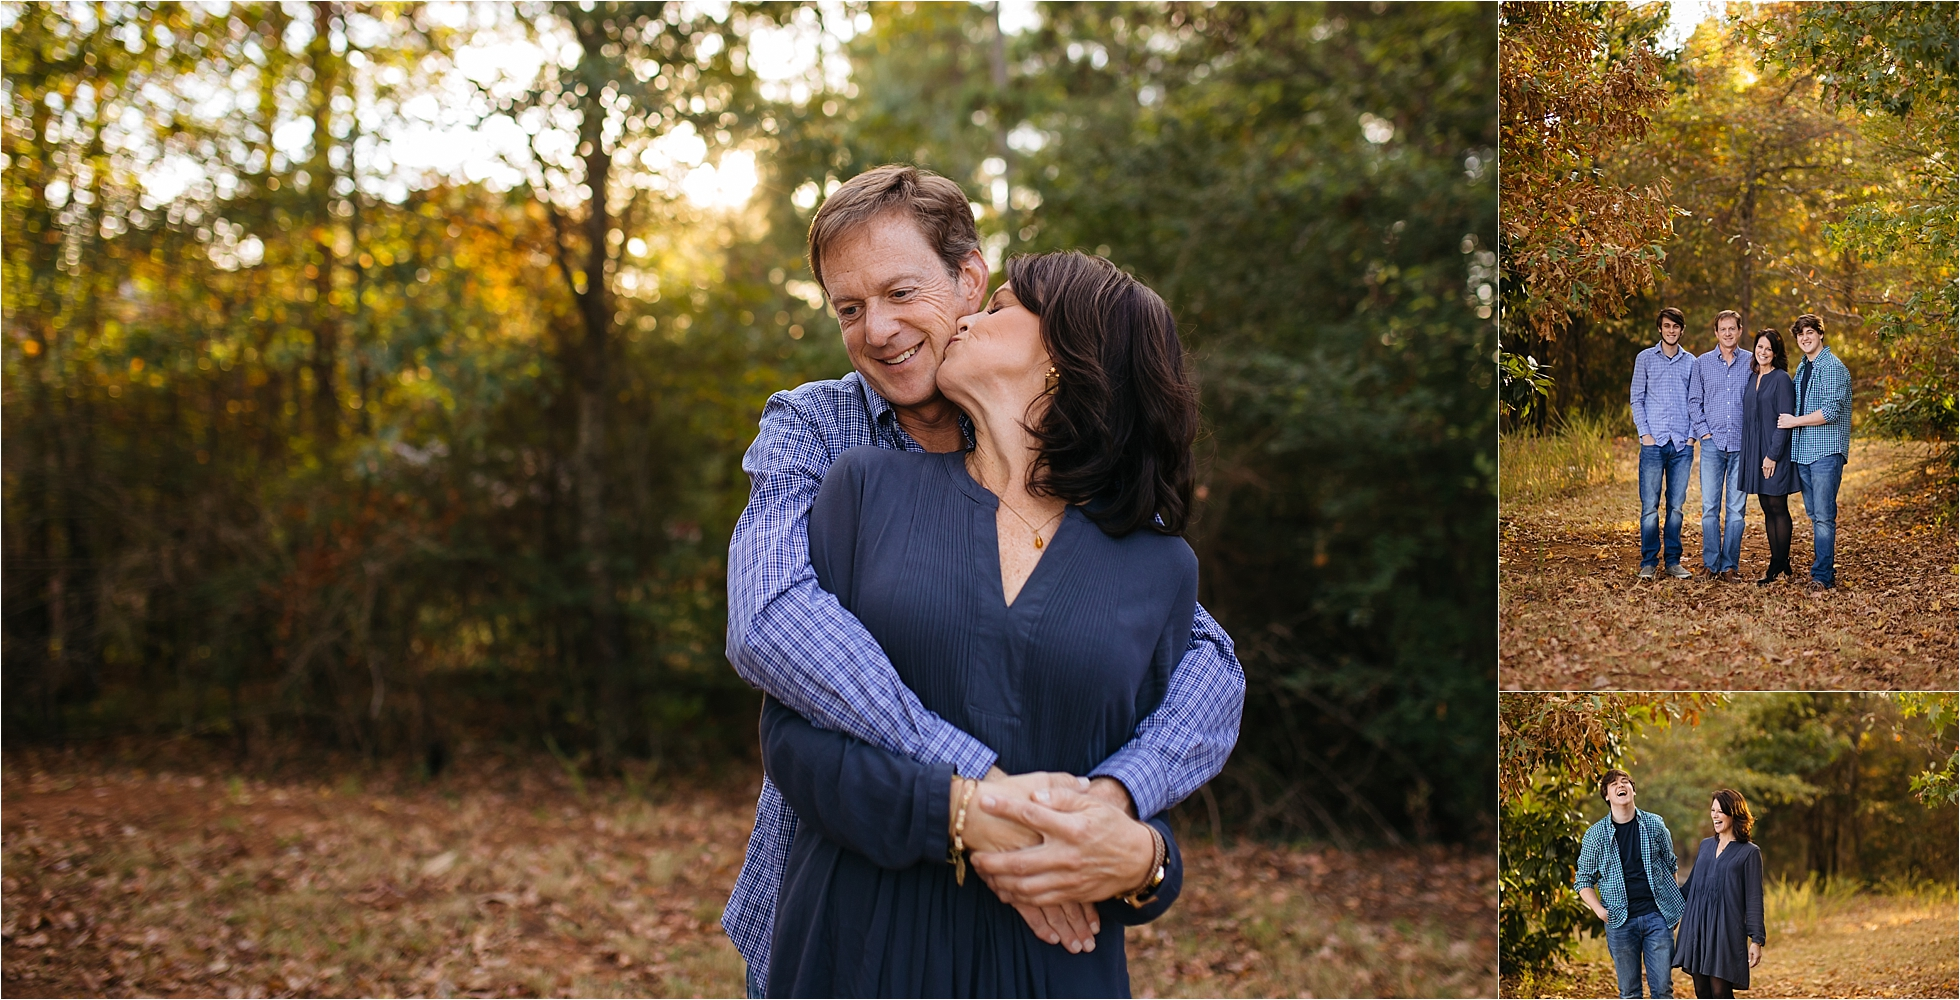 fall-family-photo-session-madison-huntsville-alabama-mary-colleen-photography-500